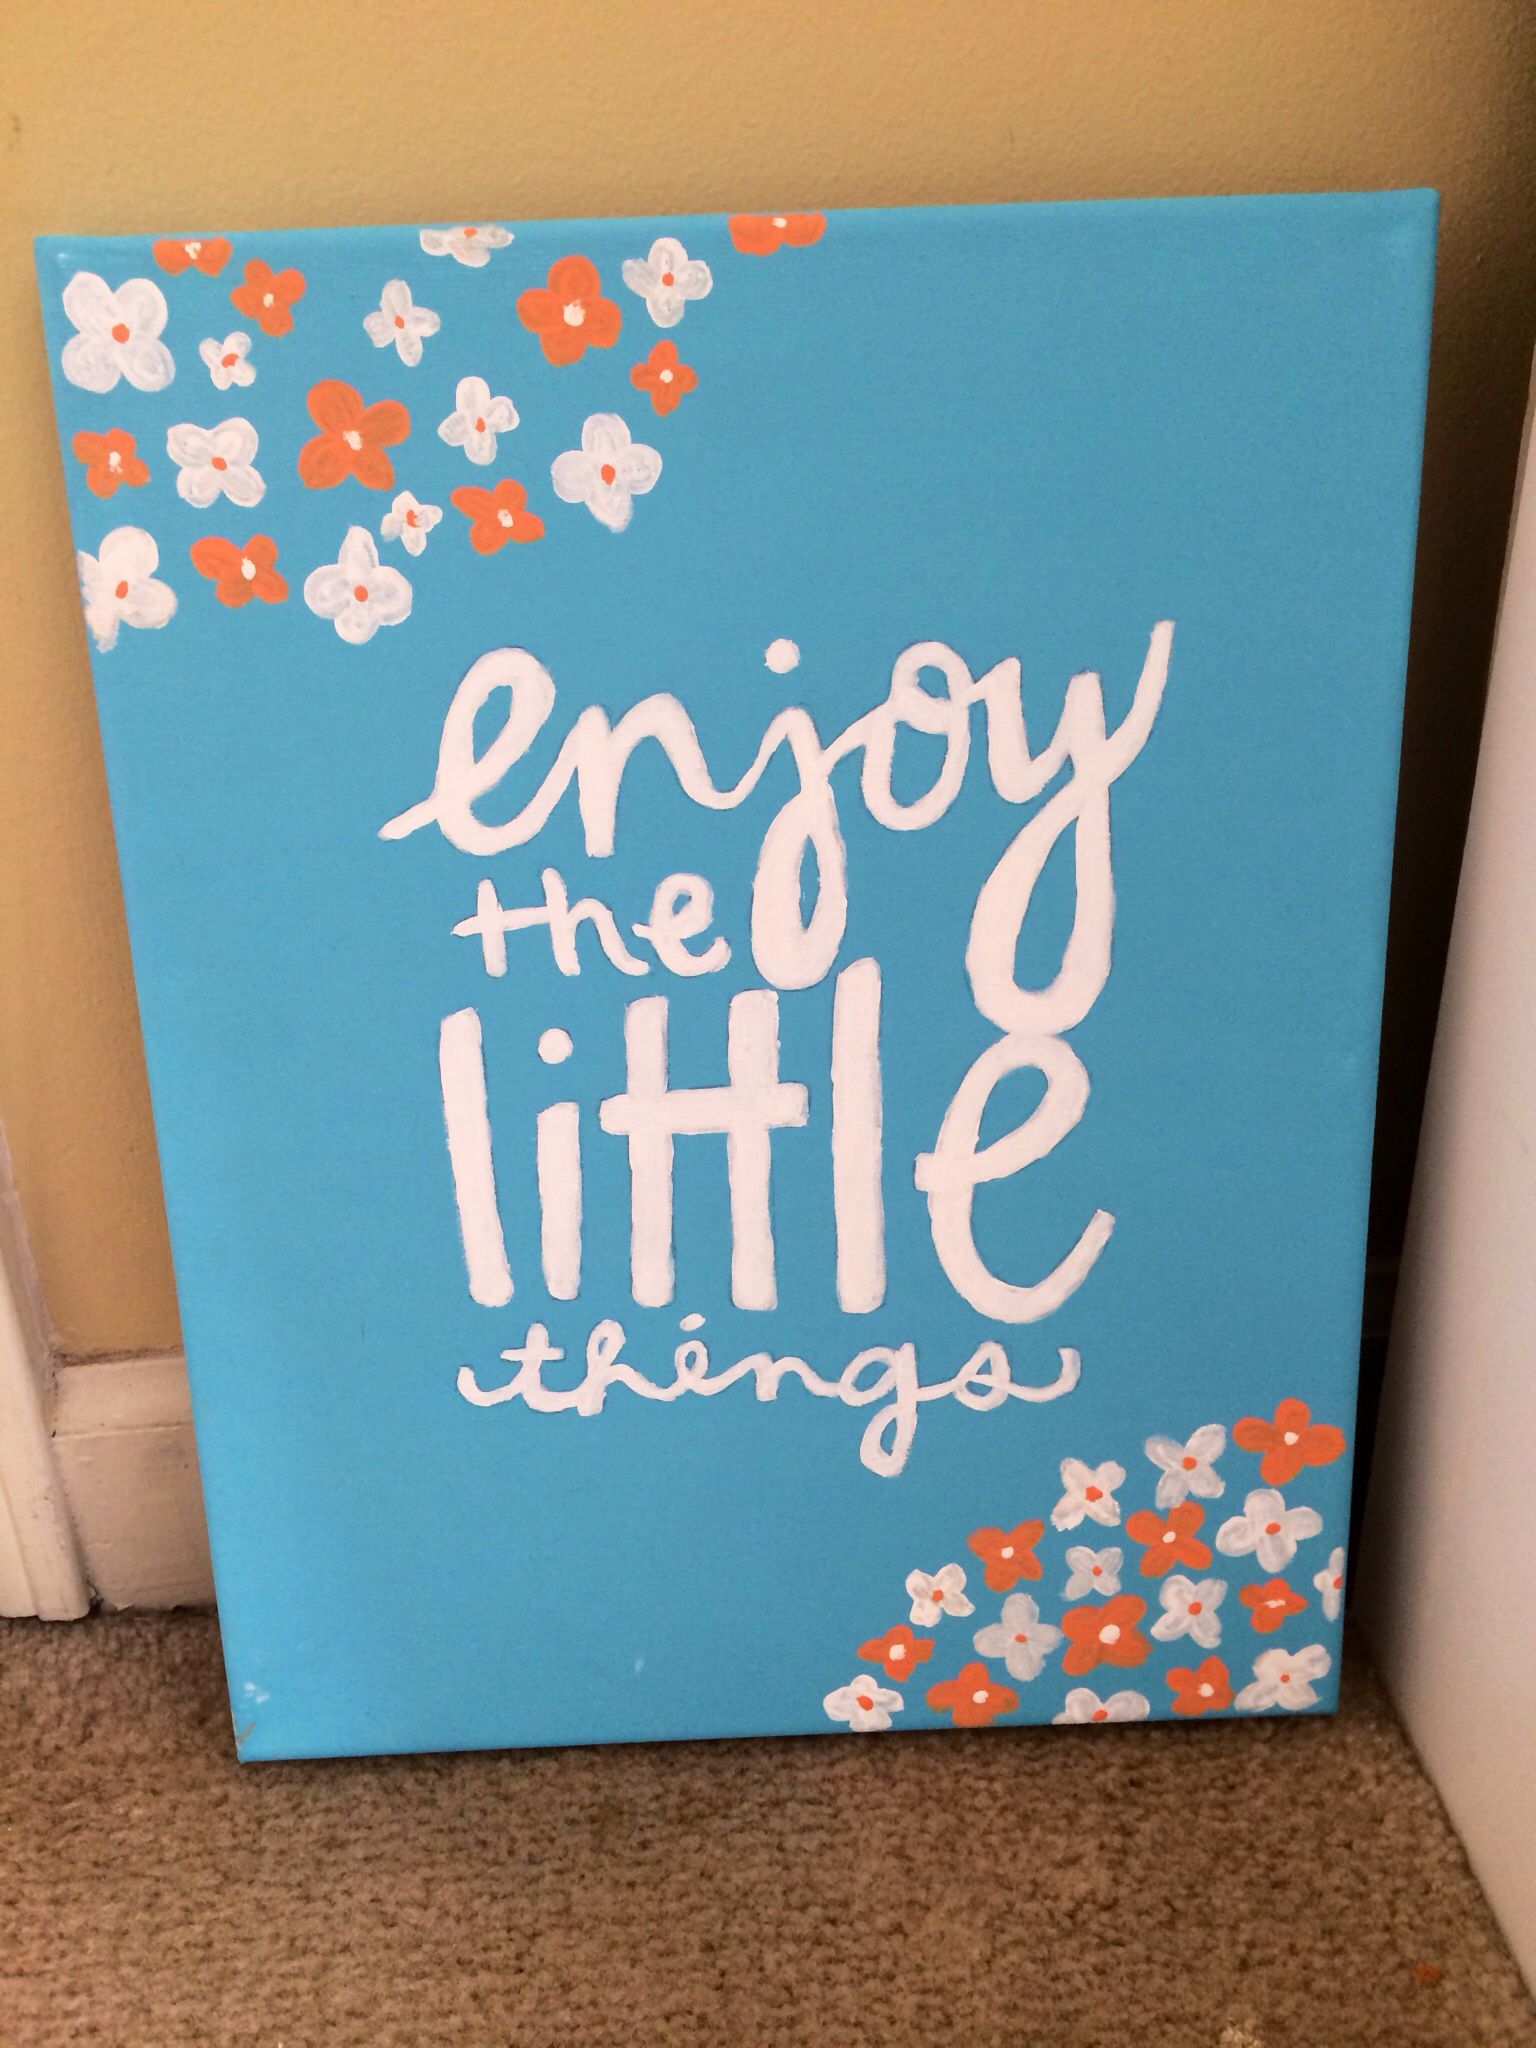 Life Canvas Quote Cute College Dorm Canvas  Artsy Afdorm Crafts  Pinterest